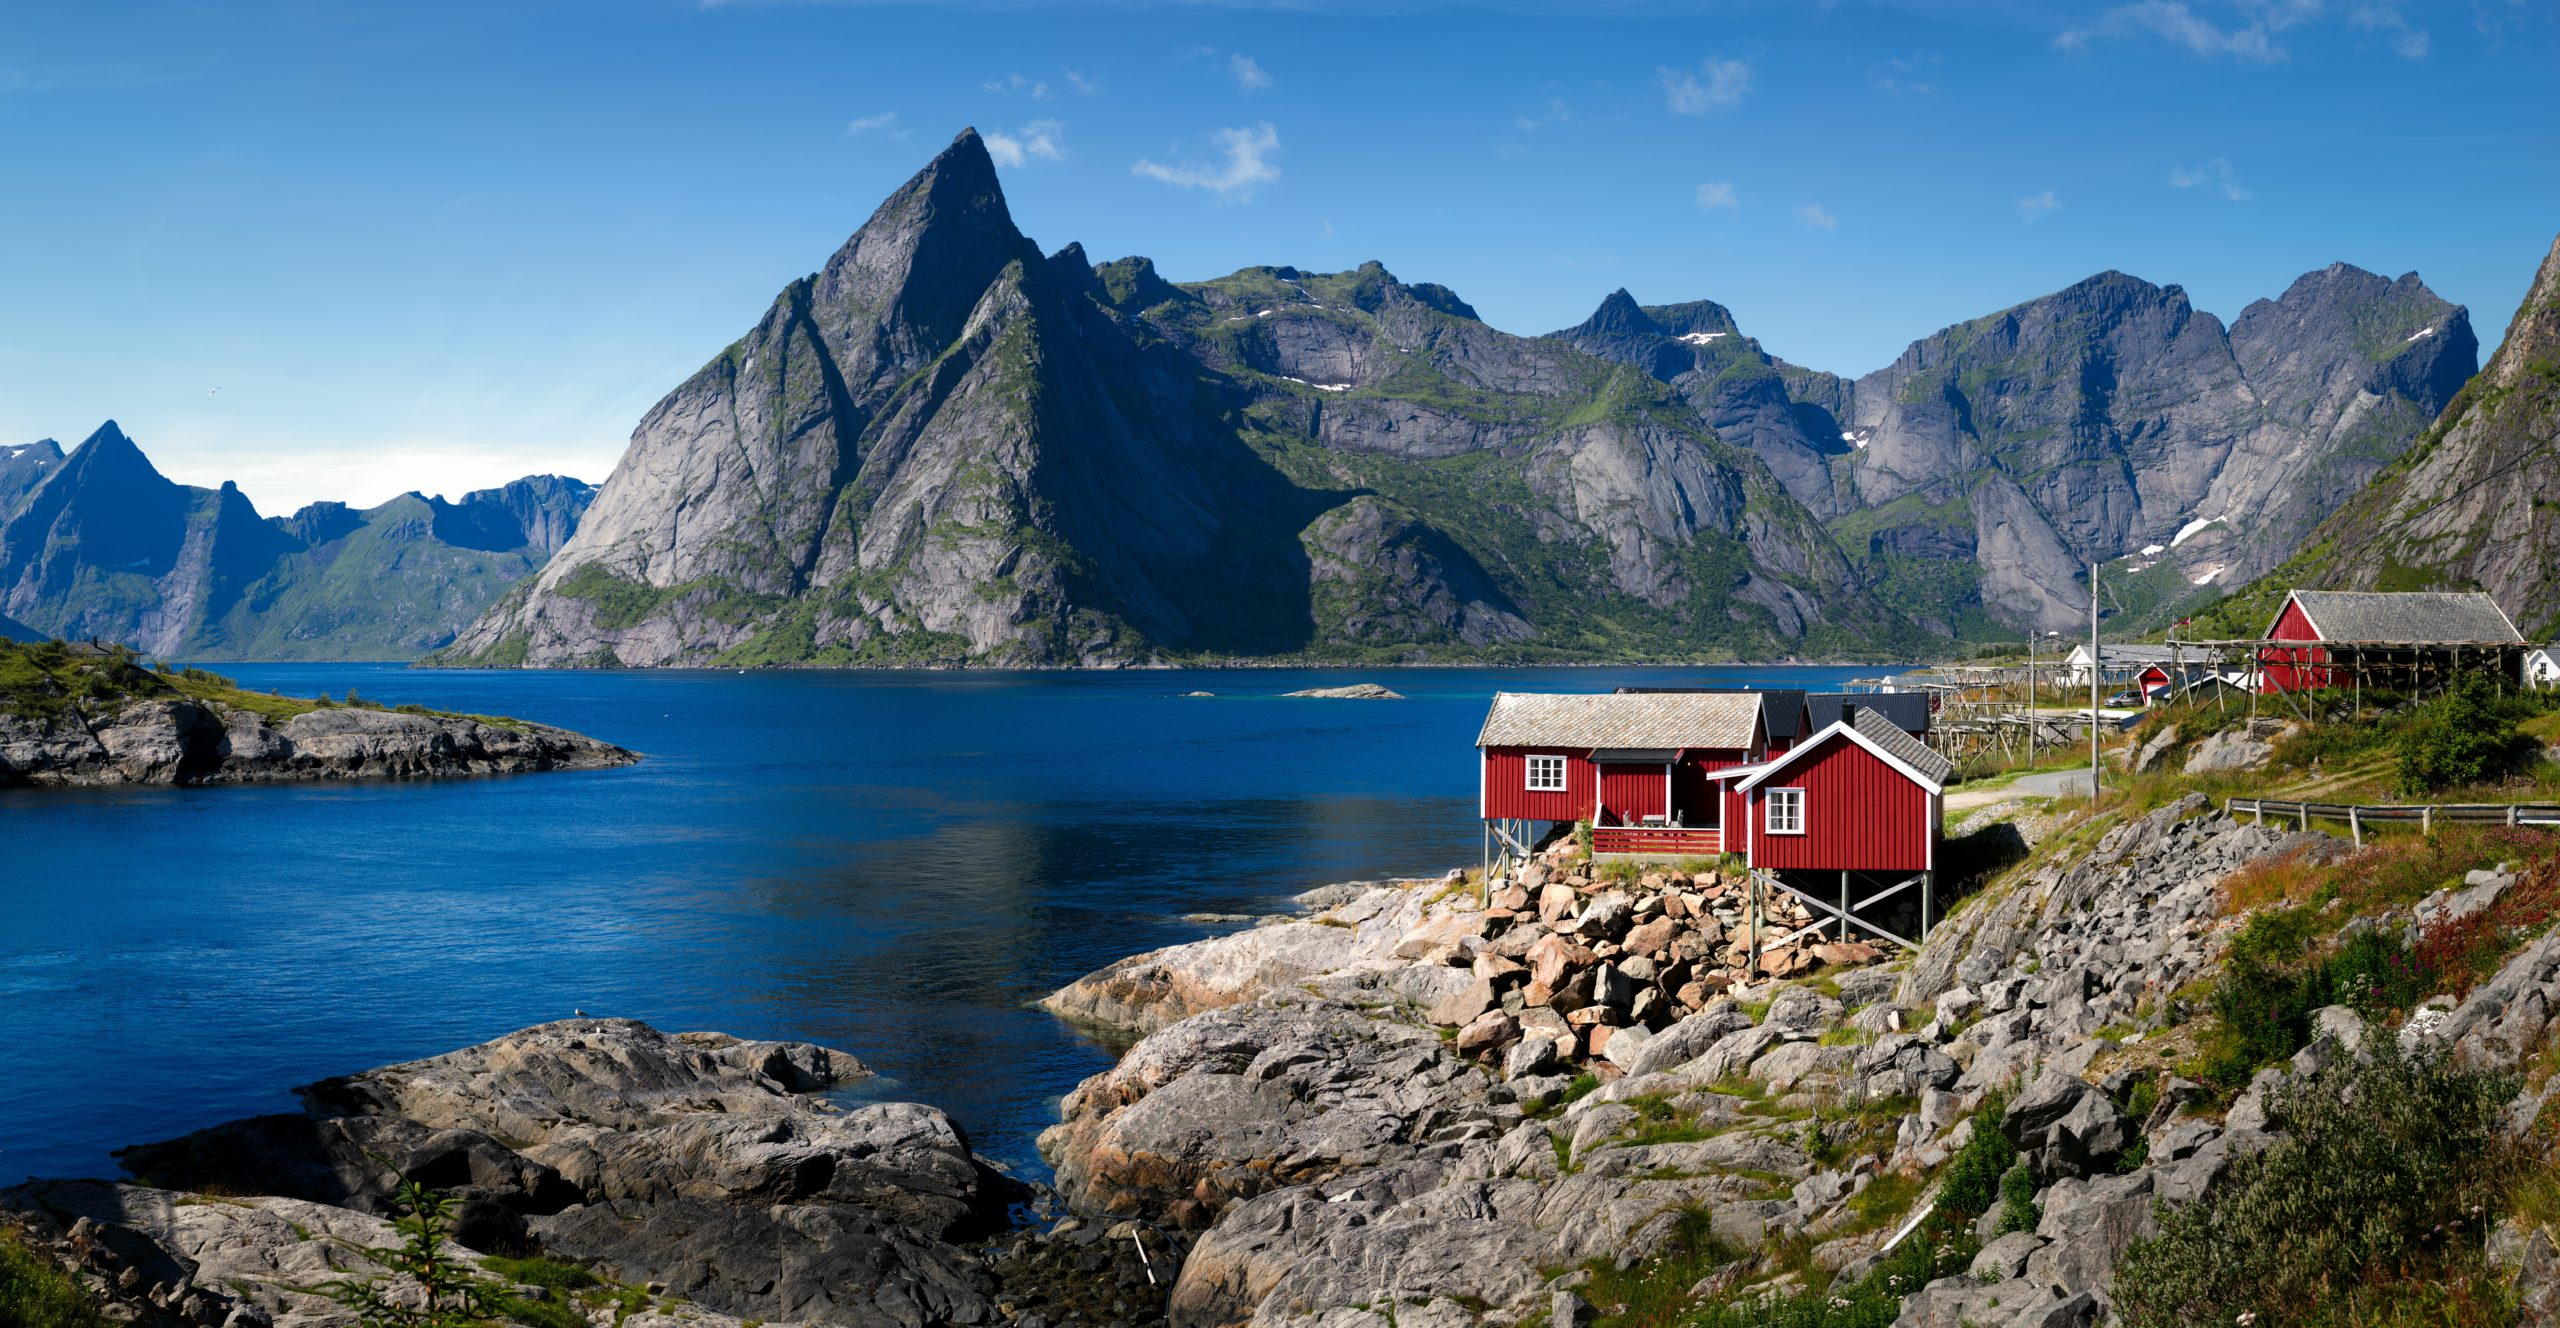 Norway [Shutterstock]